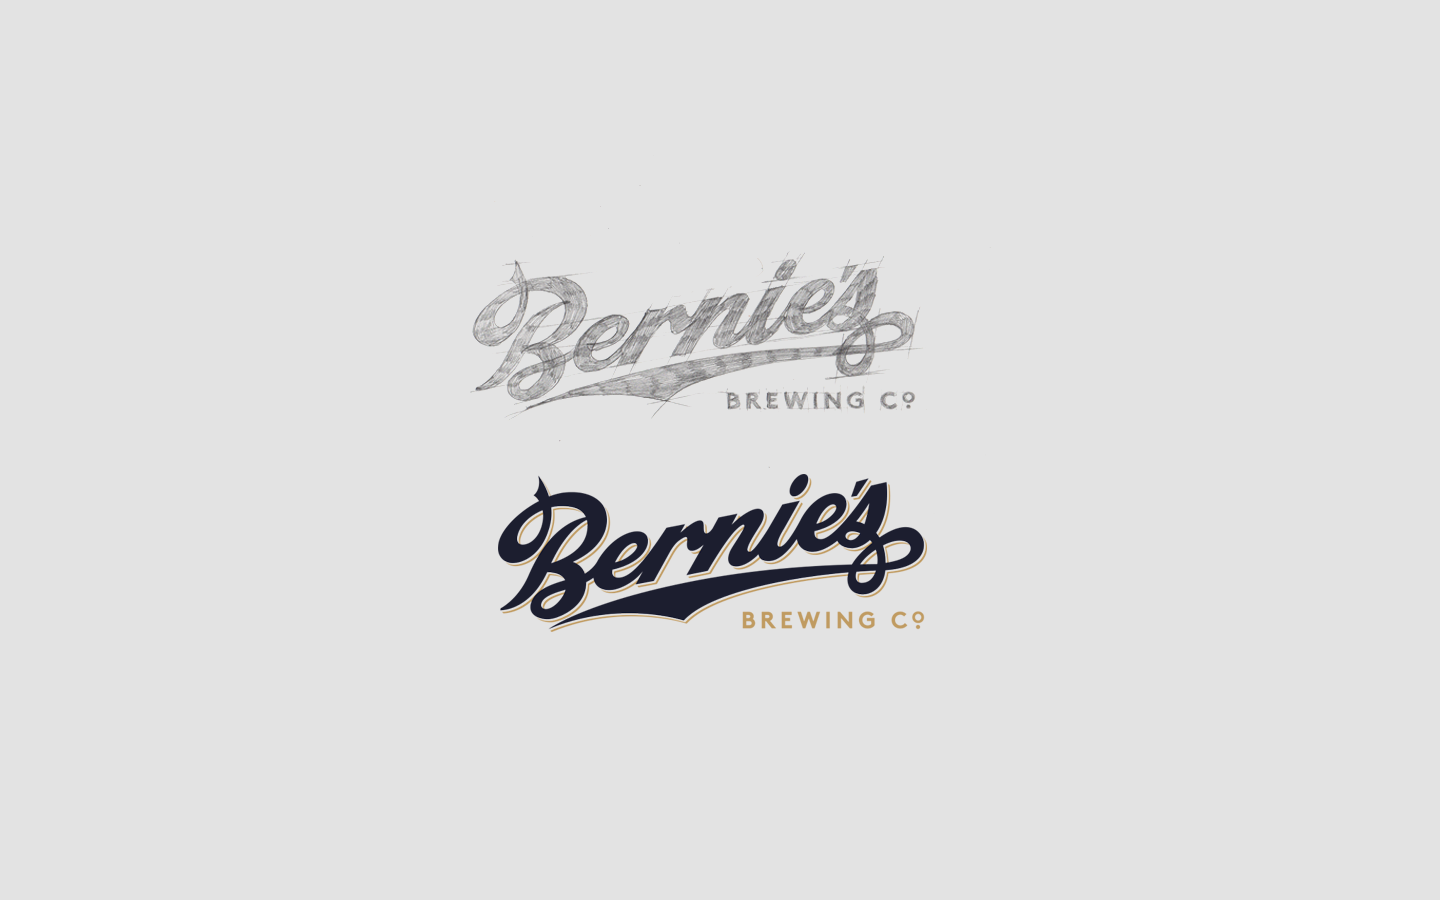 Bernie's brewing Co on Packaging of the World - Creative Package Design Gallery